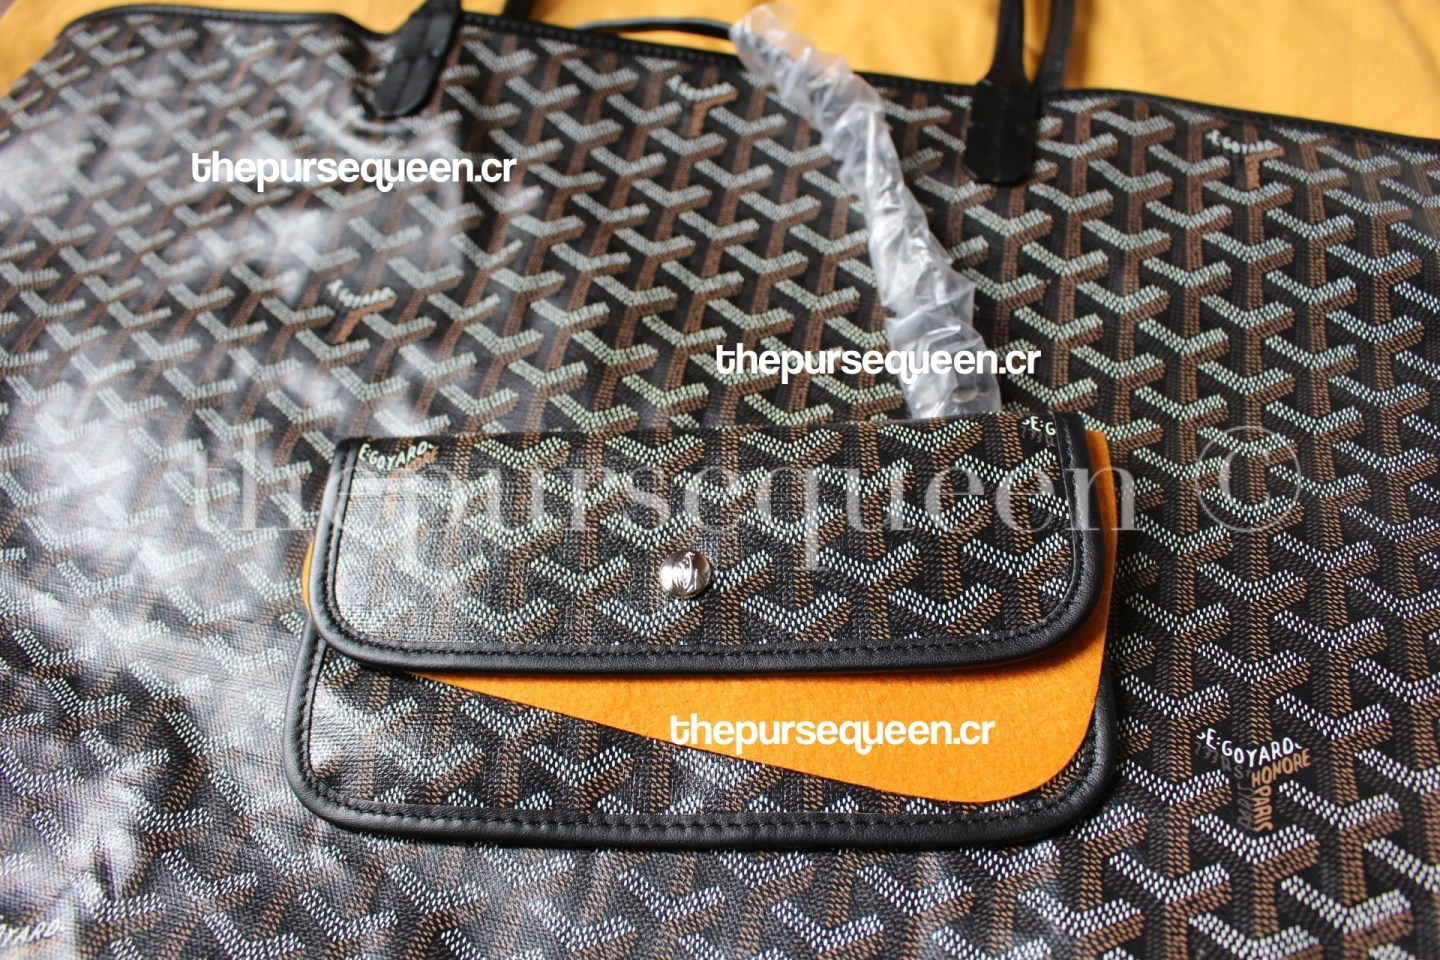 goyard-replica-saint-st-louis-tote-review-replicabags-fakevsreal-pouch